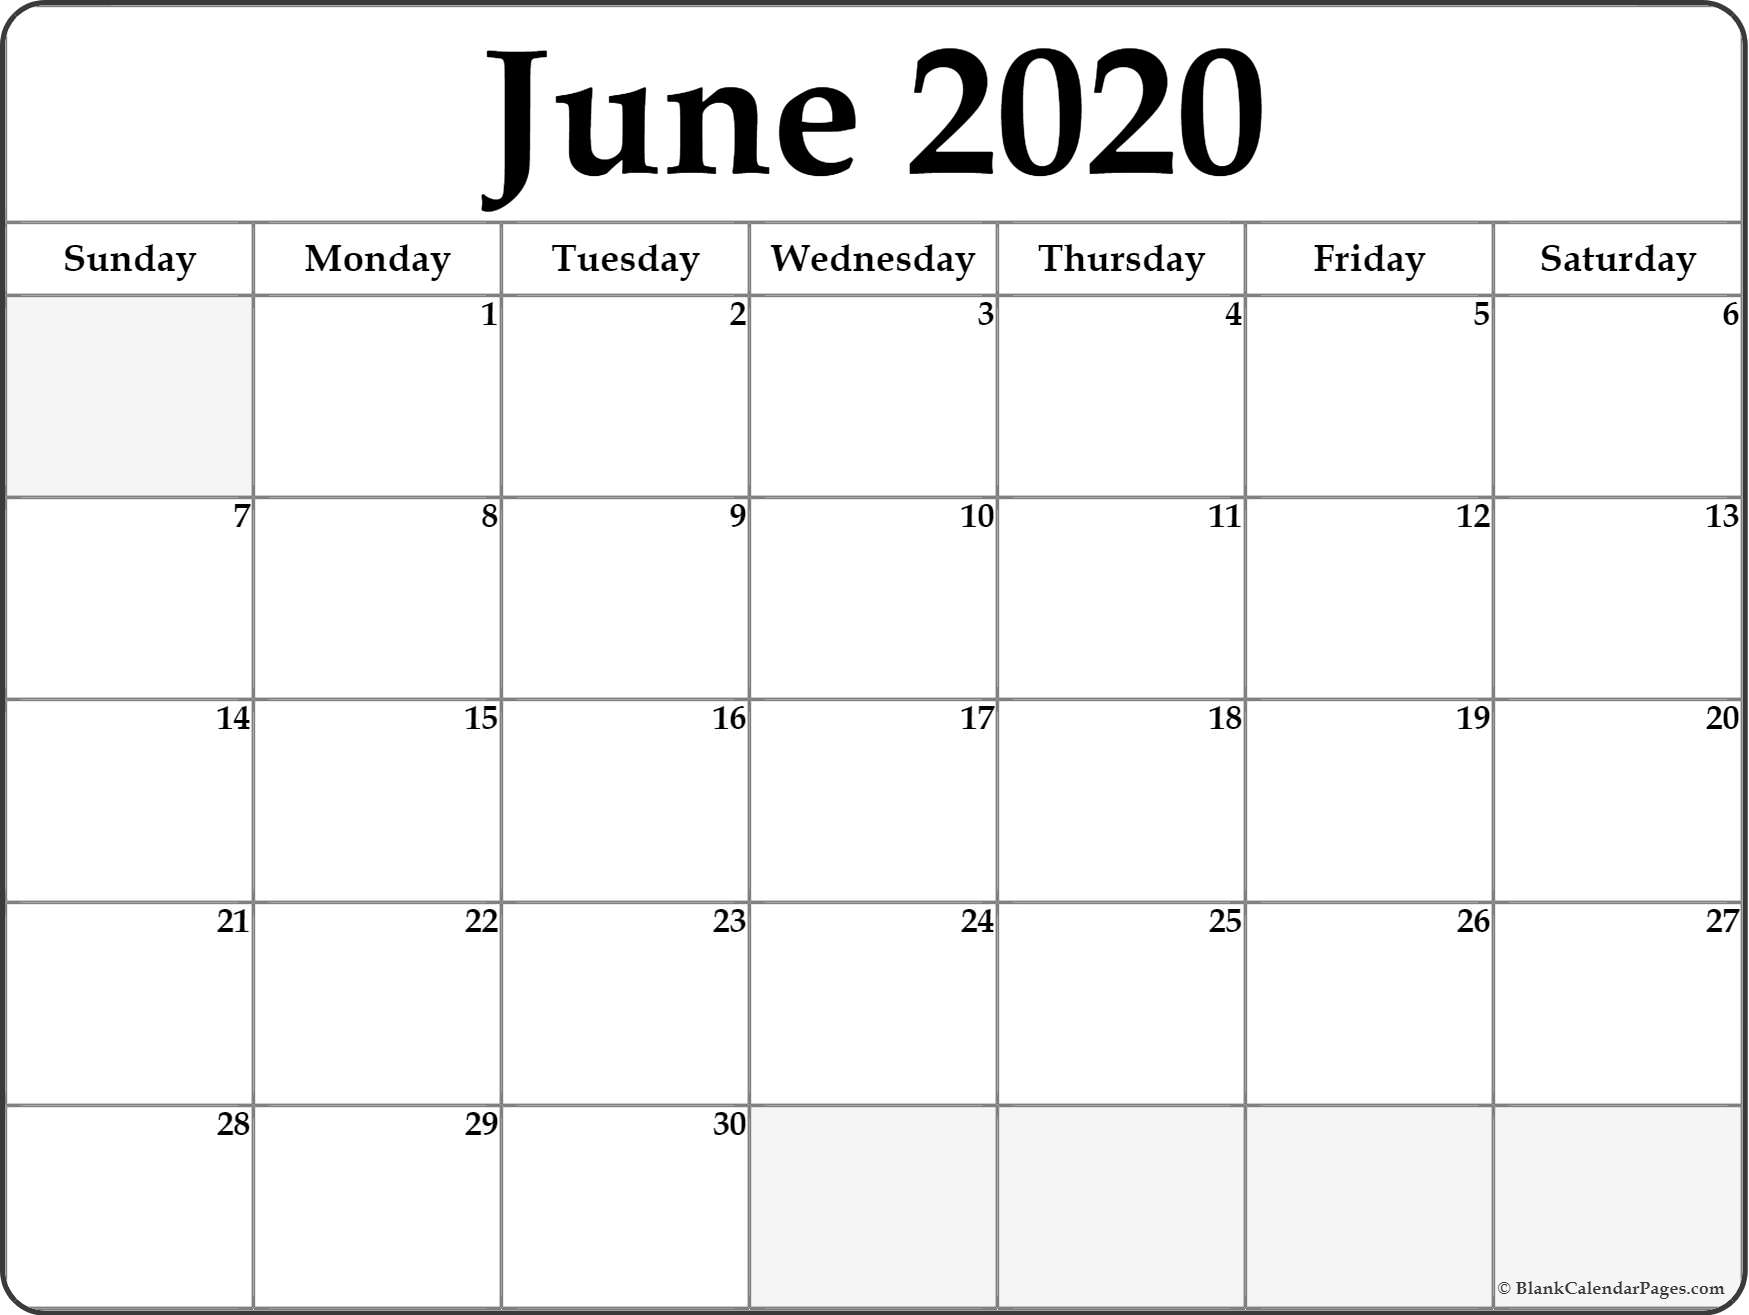 June 2020 Calendar | Free Printable Monthly Calendars with Free Printable Calendar June 2019 - June 2020